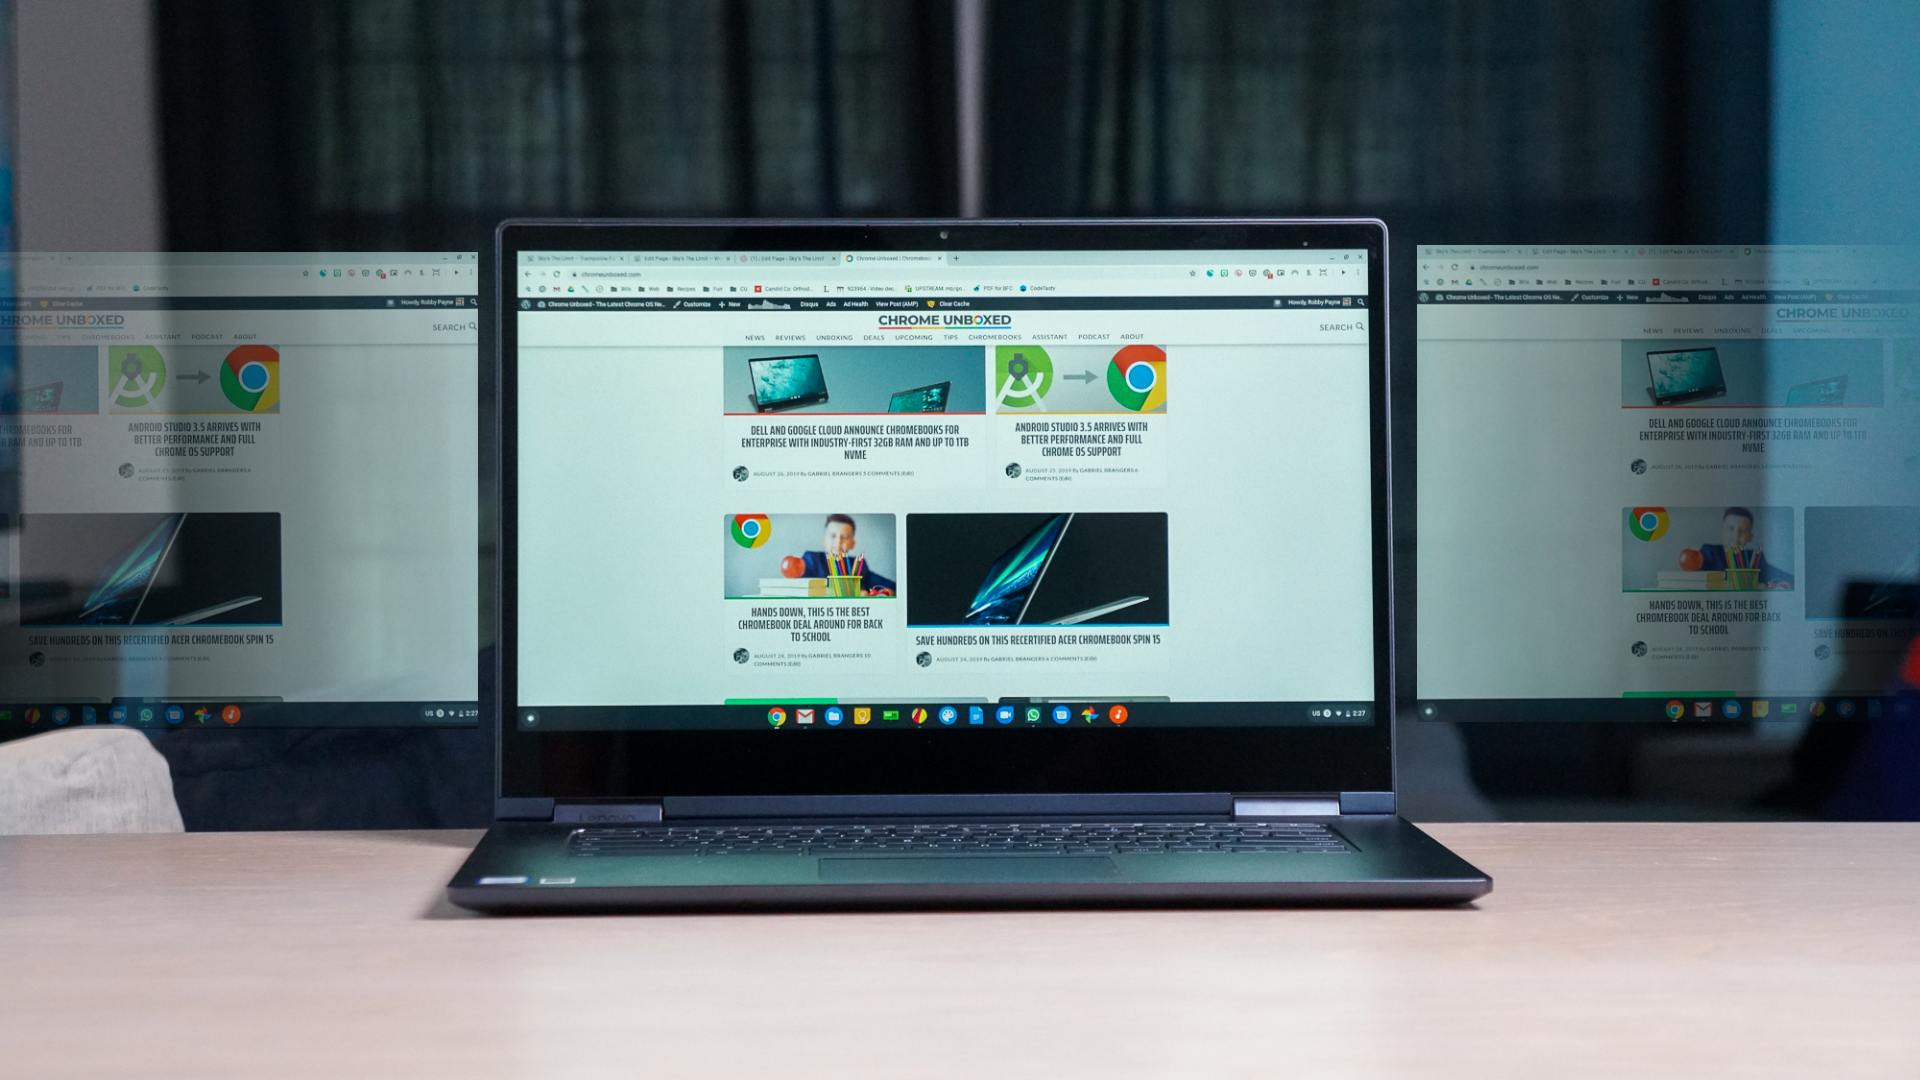 Virtual desks on Chrome OS 77 have completely changed my